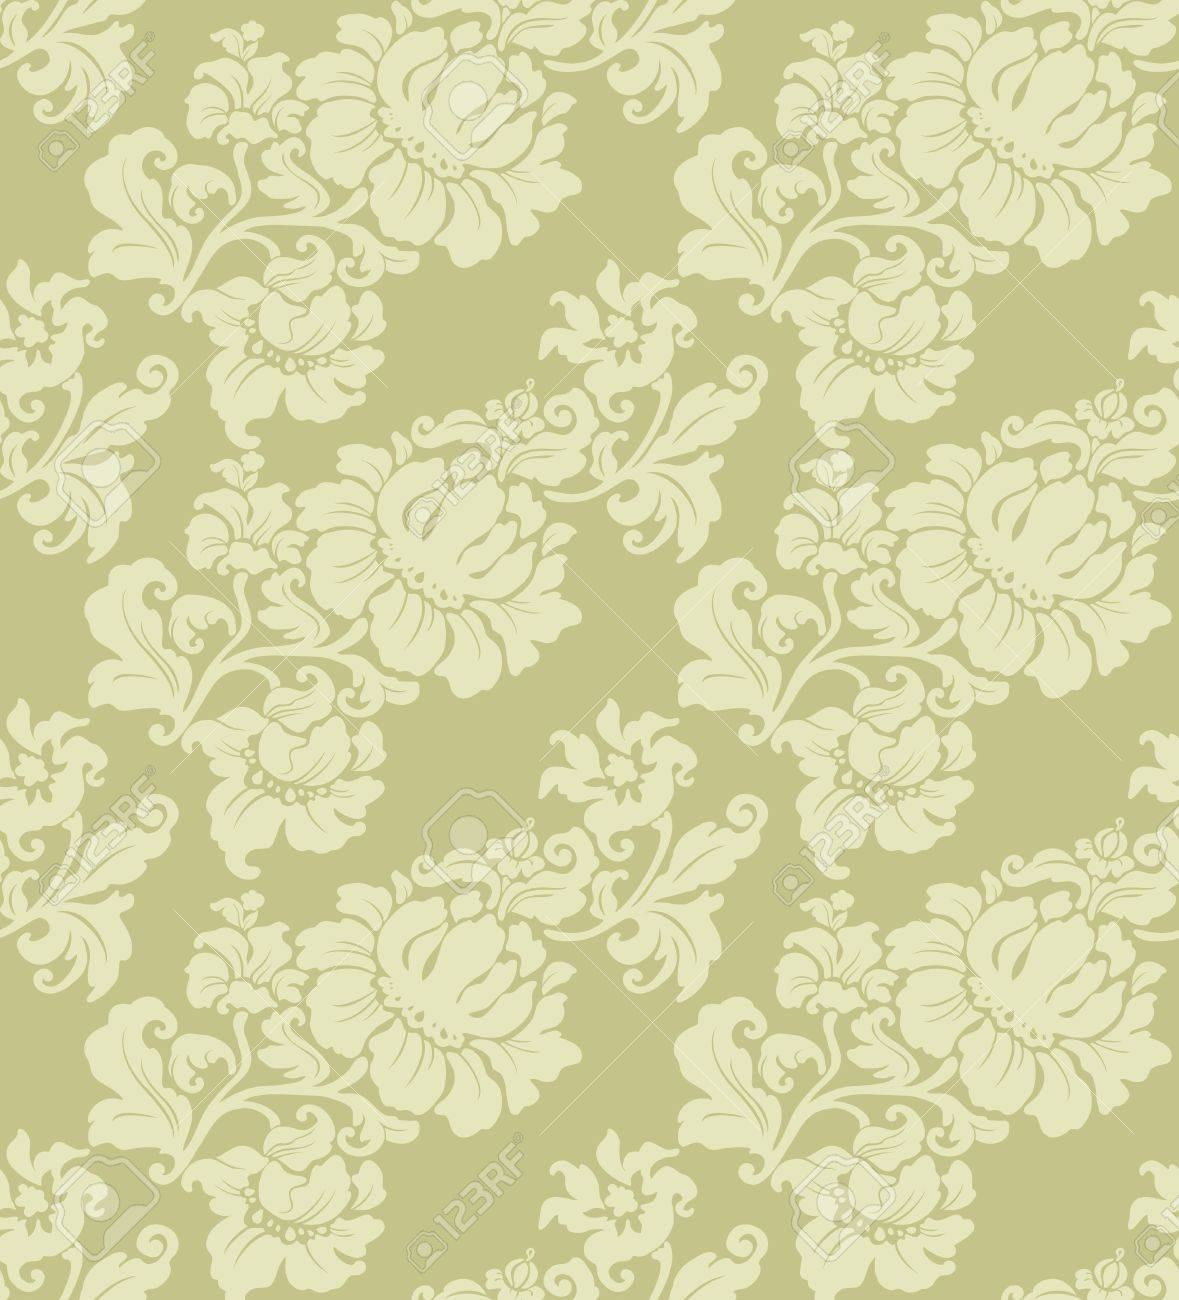 Seamless Floral Pattern Stock Vector - 10612231